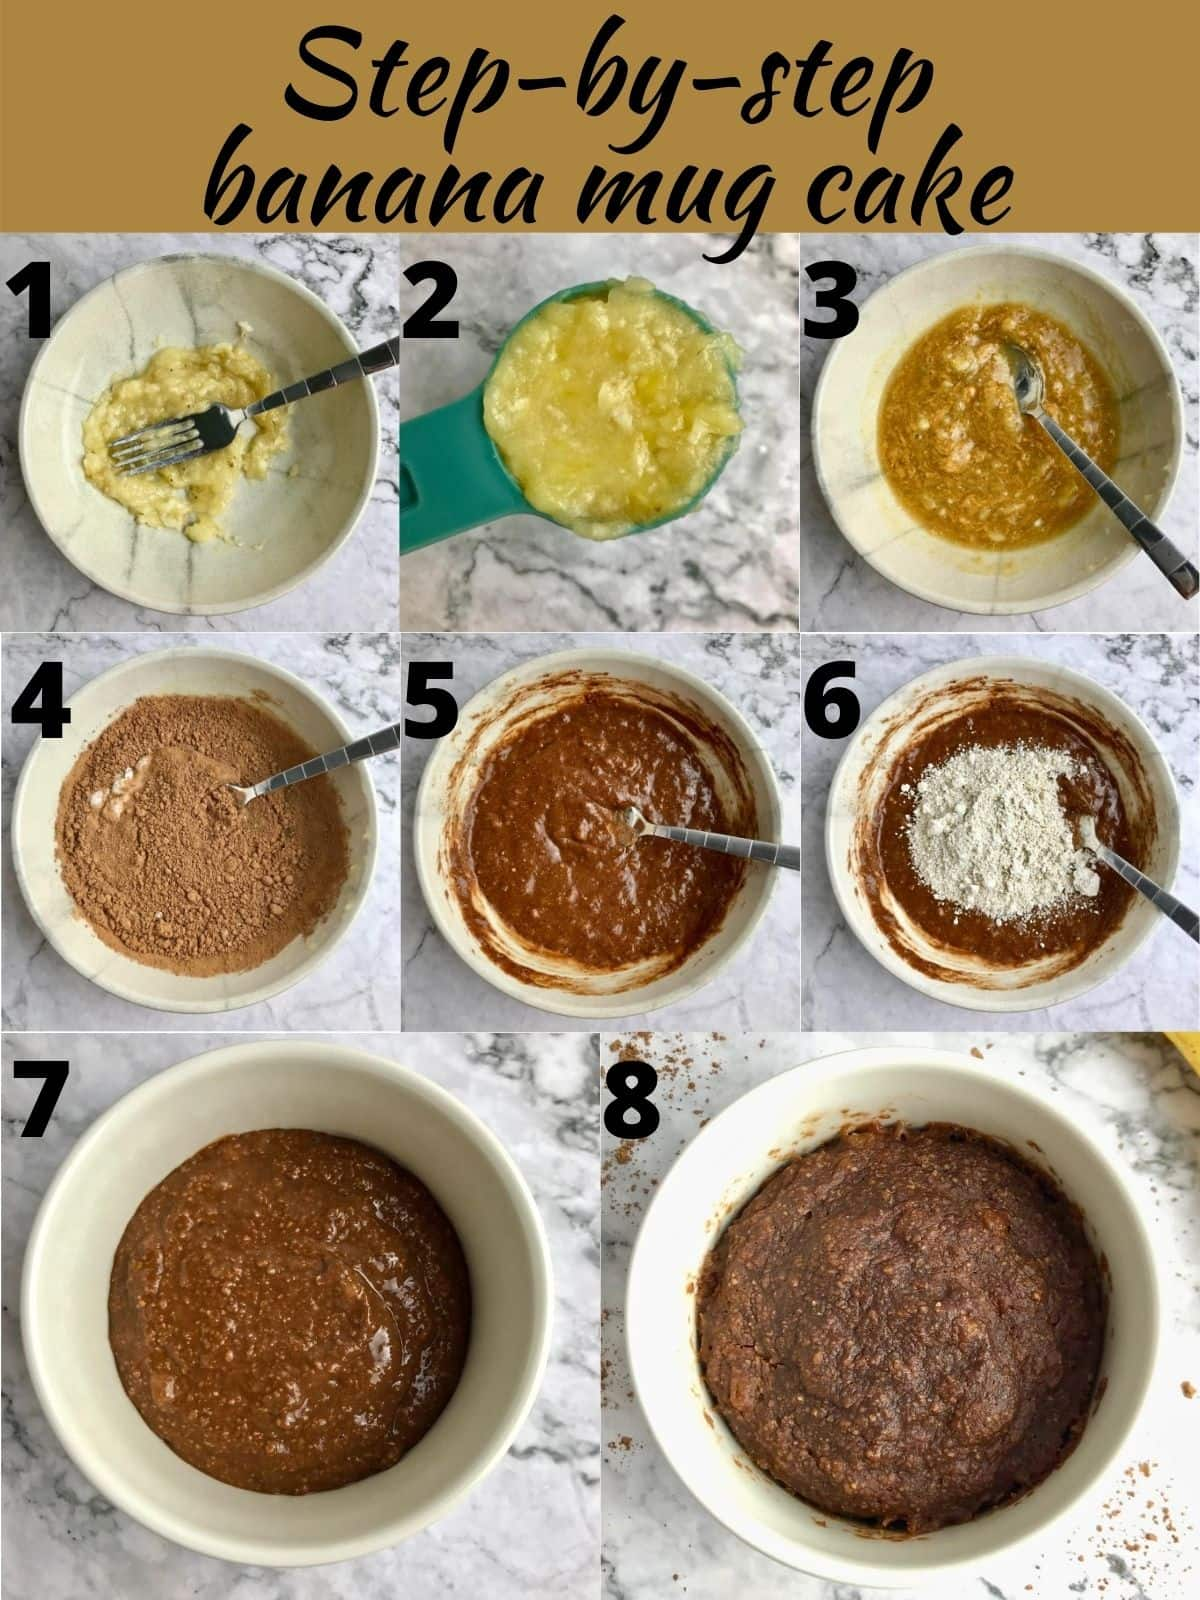 Step by step images of how to make a vegan banana mug brownie.